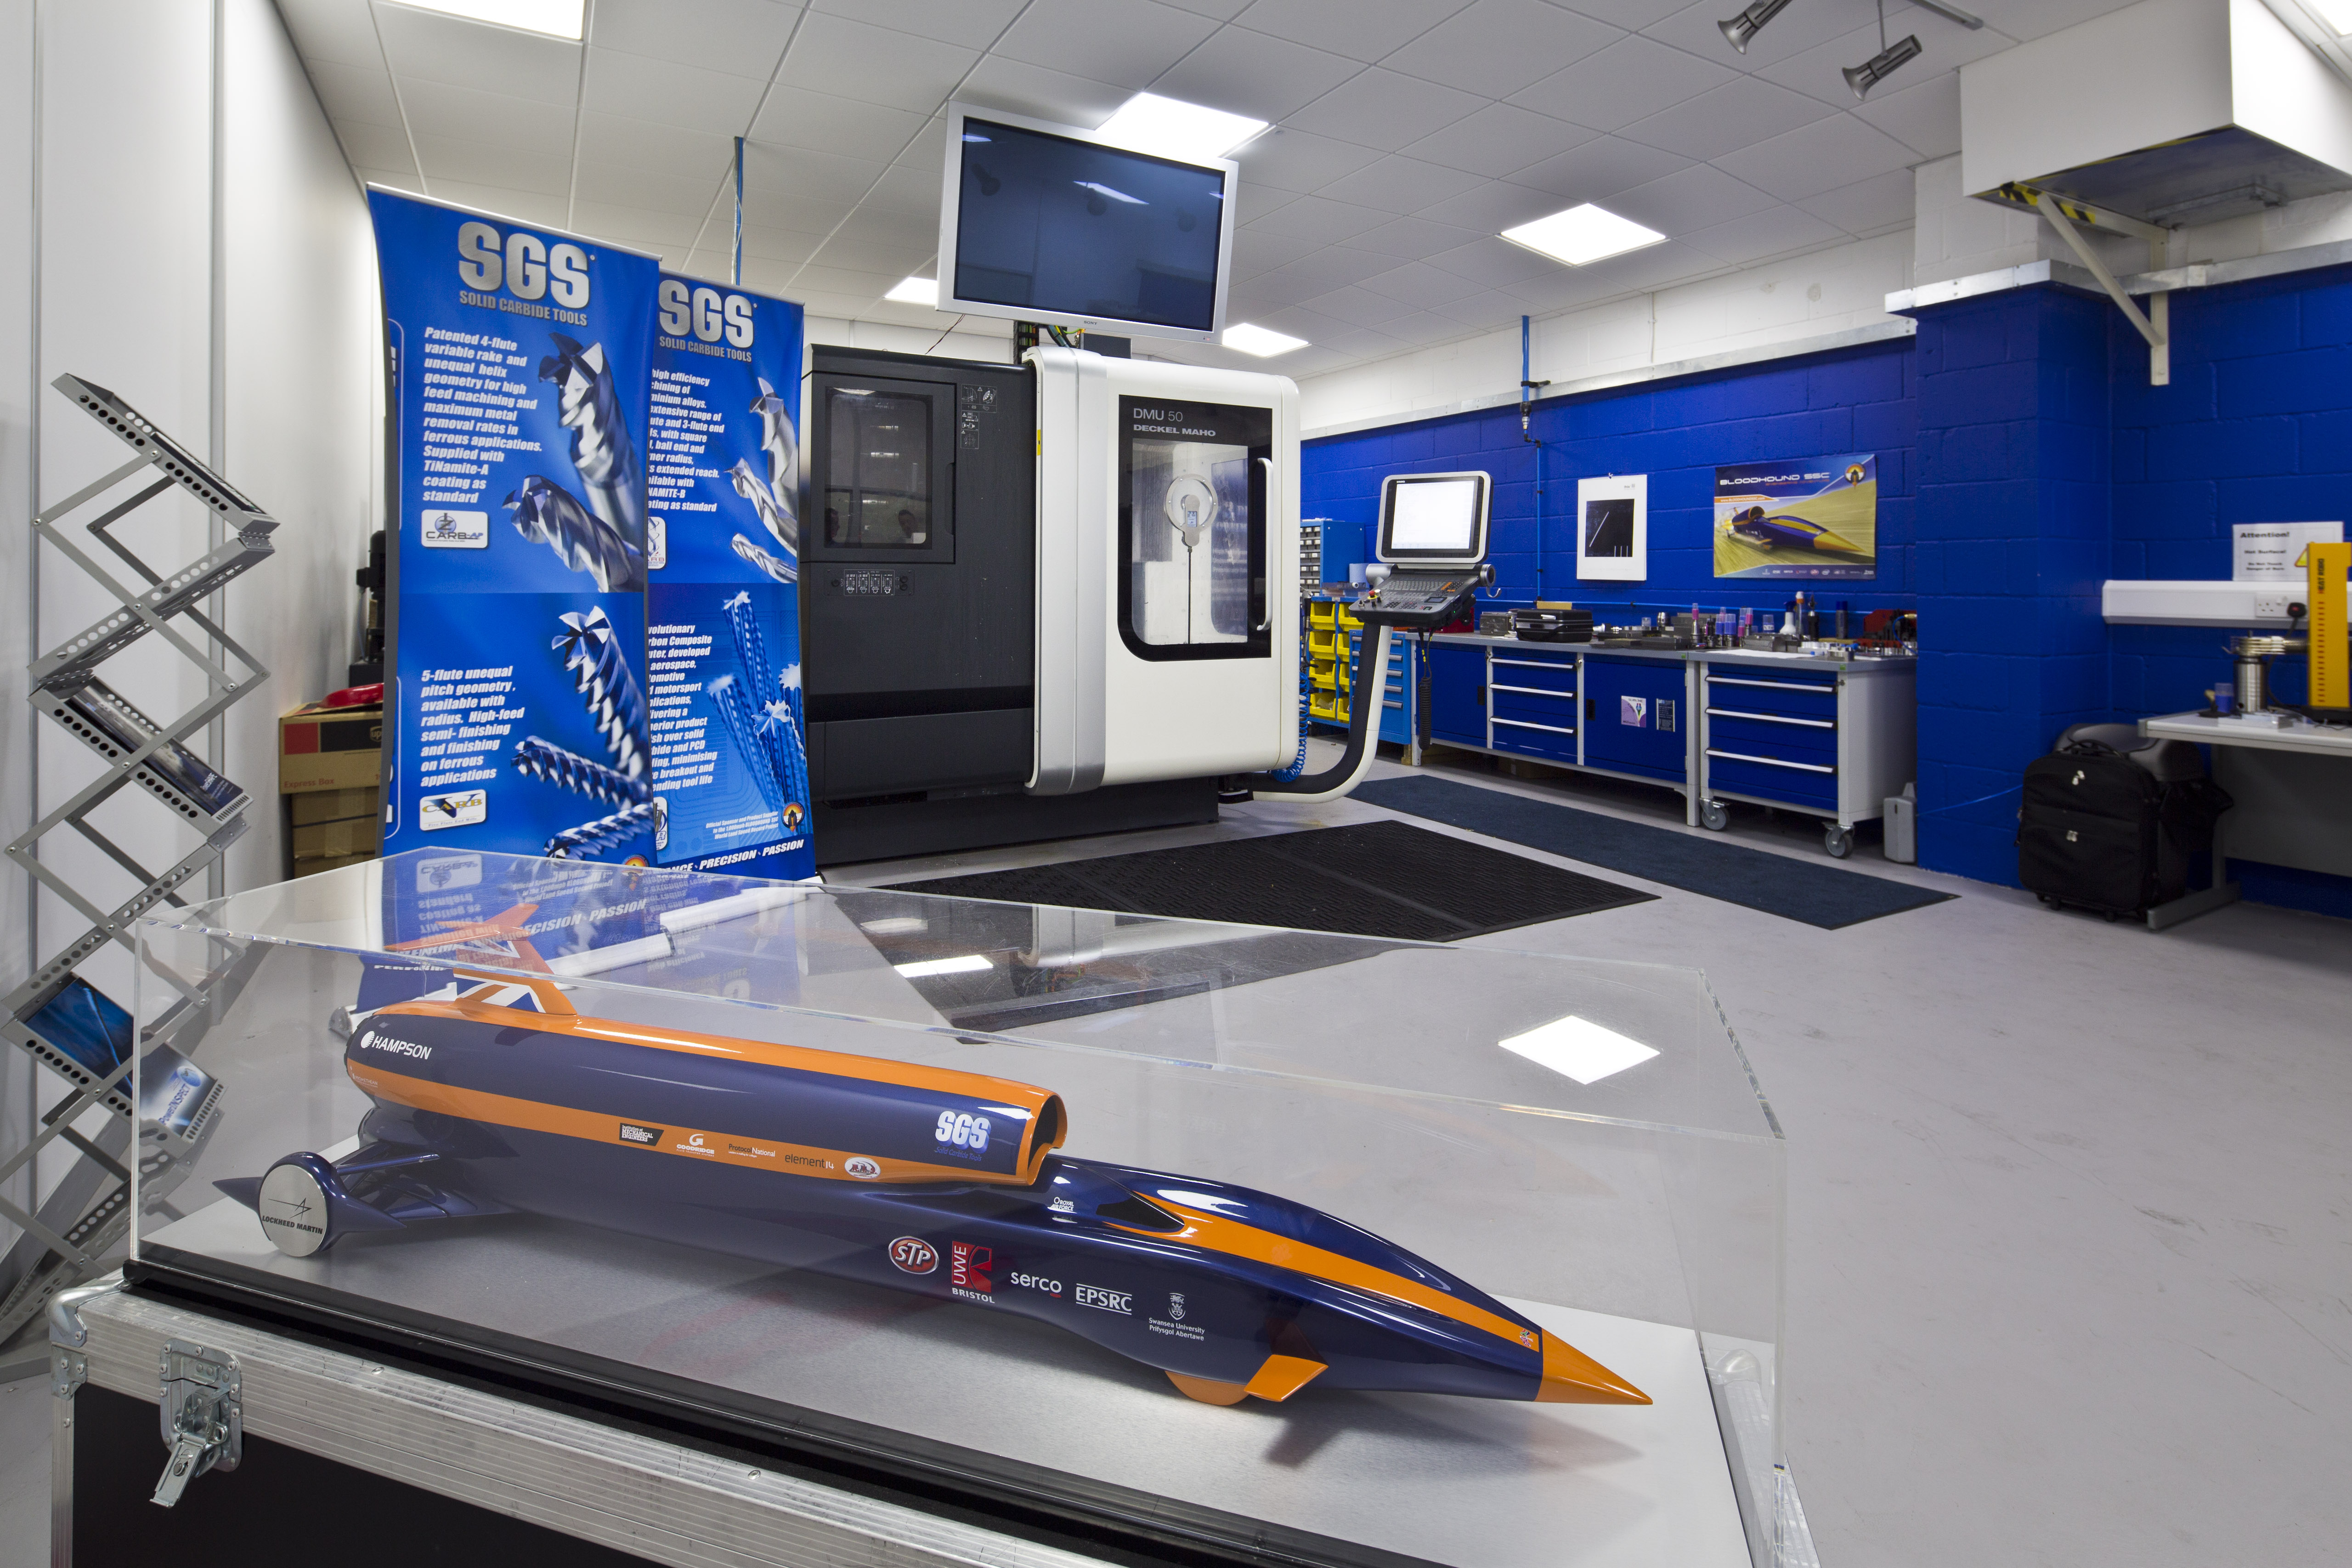 Demo room featuring the Bloodhound model